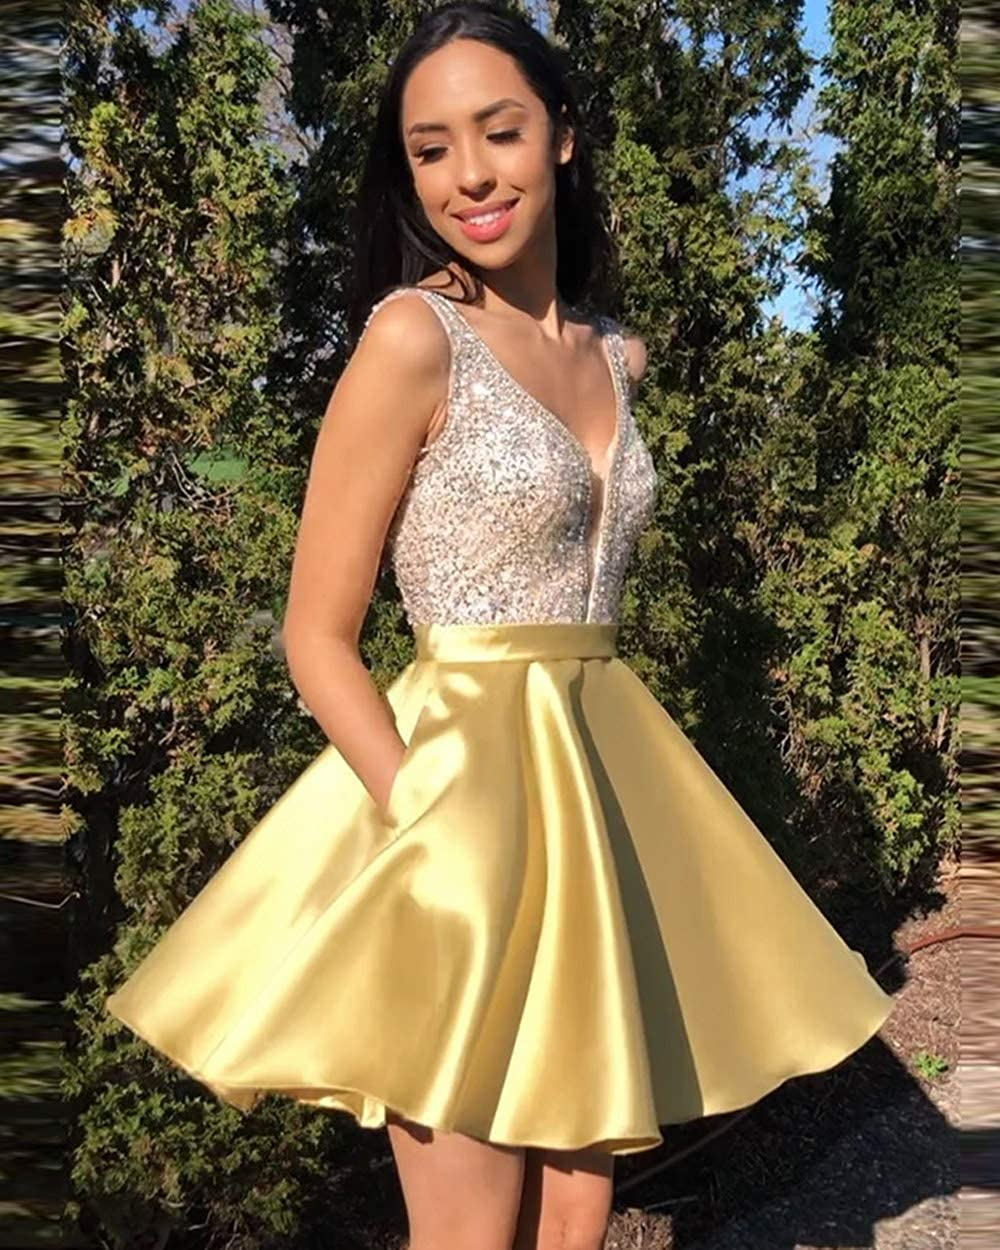 Stylefun Homecoming Dresses for Freshman Girls a line v Neck Short Cocktail Dress with Pockets 2020 Baby Pink 5nkKN